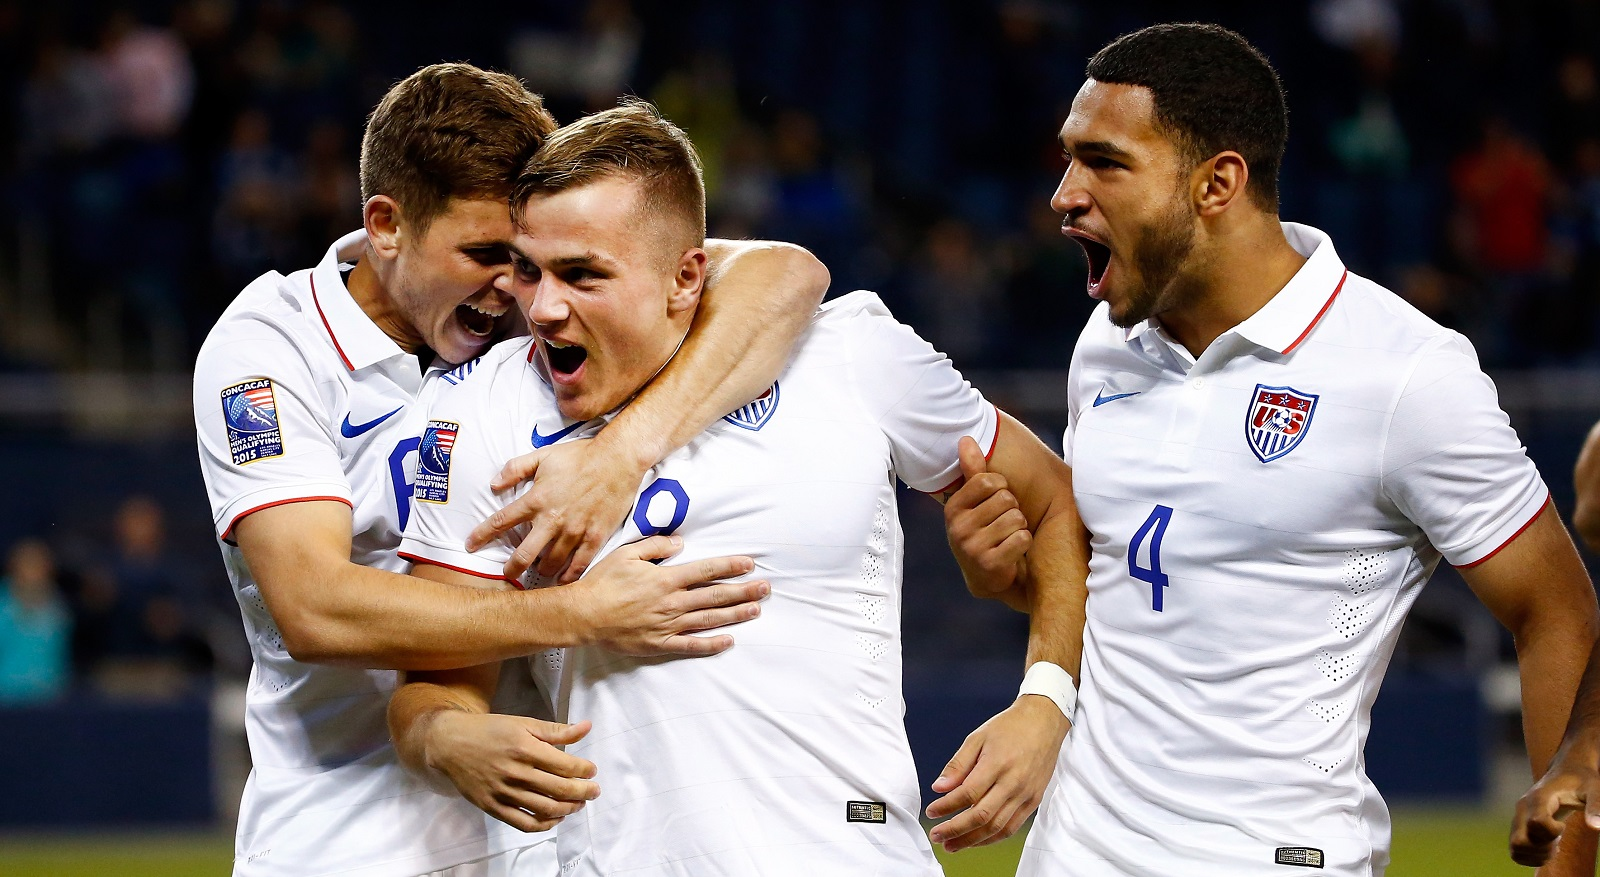 Jordan Morris, center, has a decision to make. Does he try to move overseas, sign with Seattle or return to college? (Getty Images)